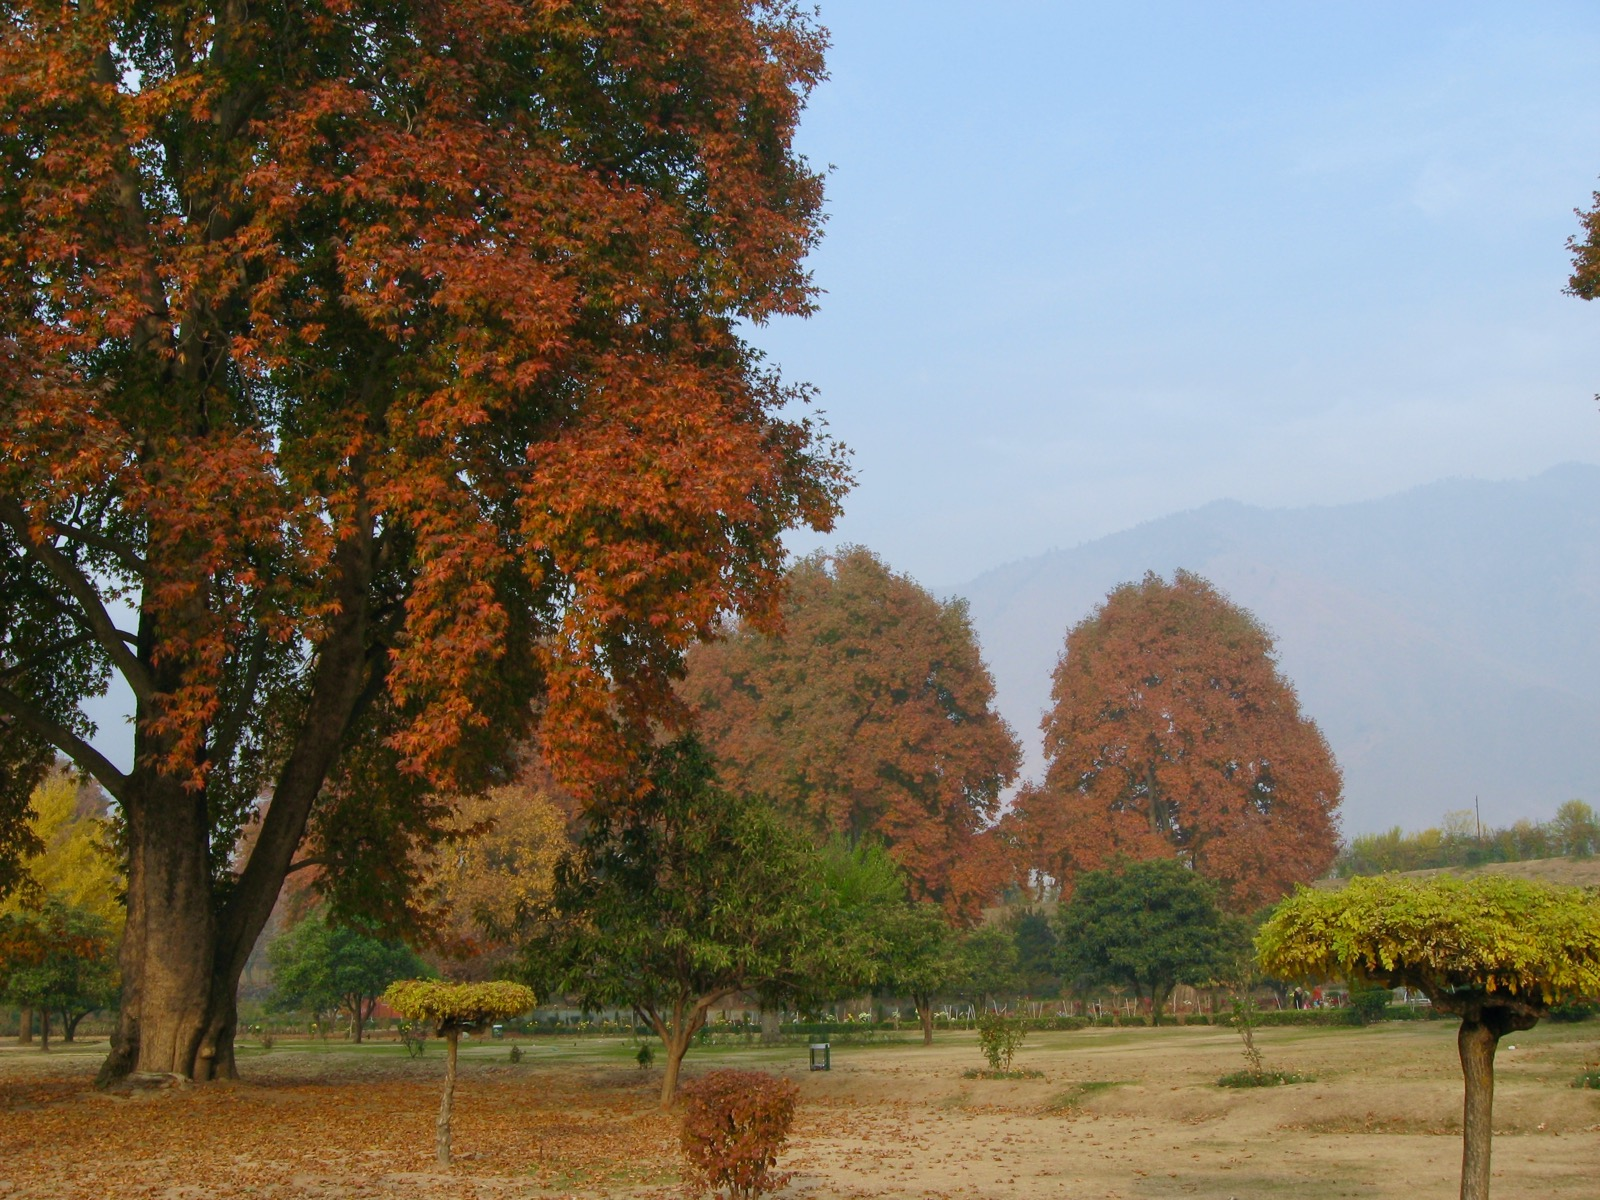 Fall autumn colors on the Chinar trees at a garden in Srinagar, Kashmir